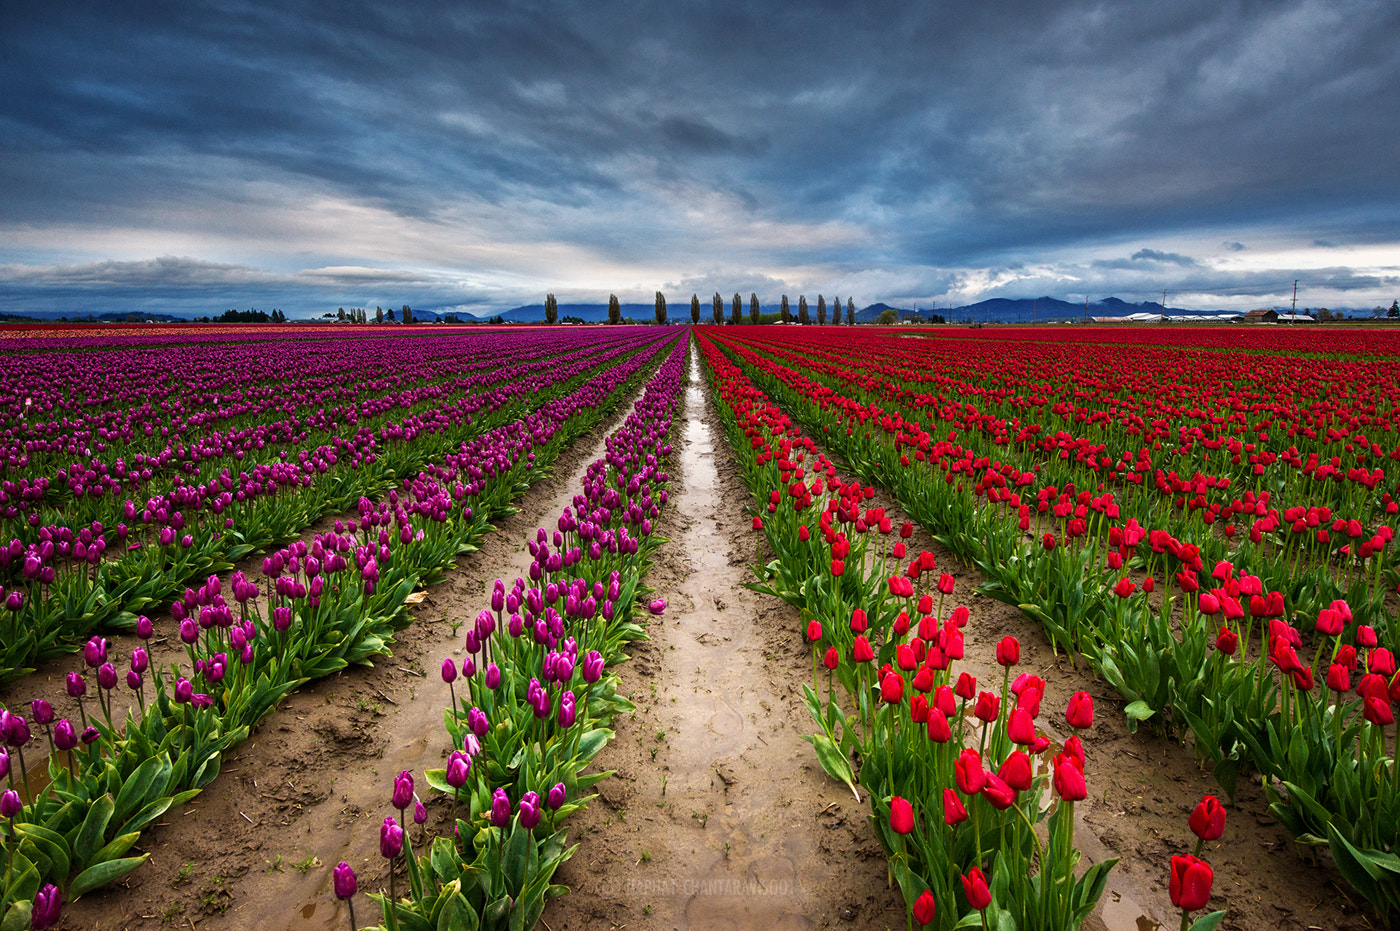 Photograph Tulip Field by Nae Chantaravisoot on 500px